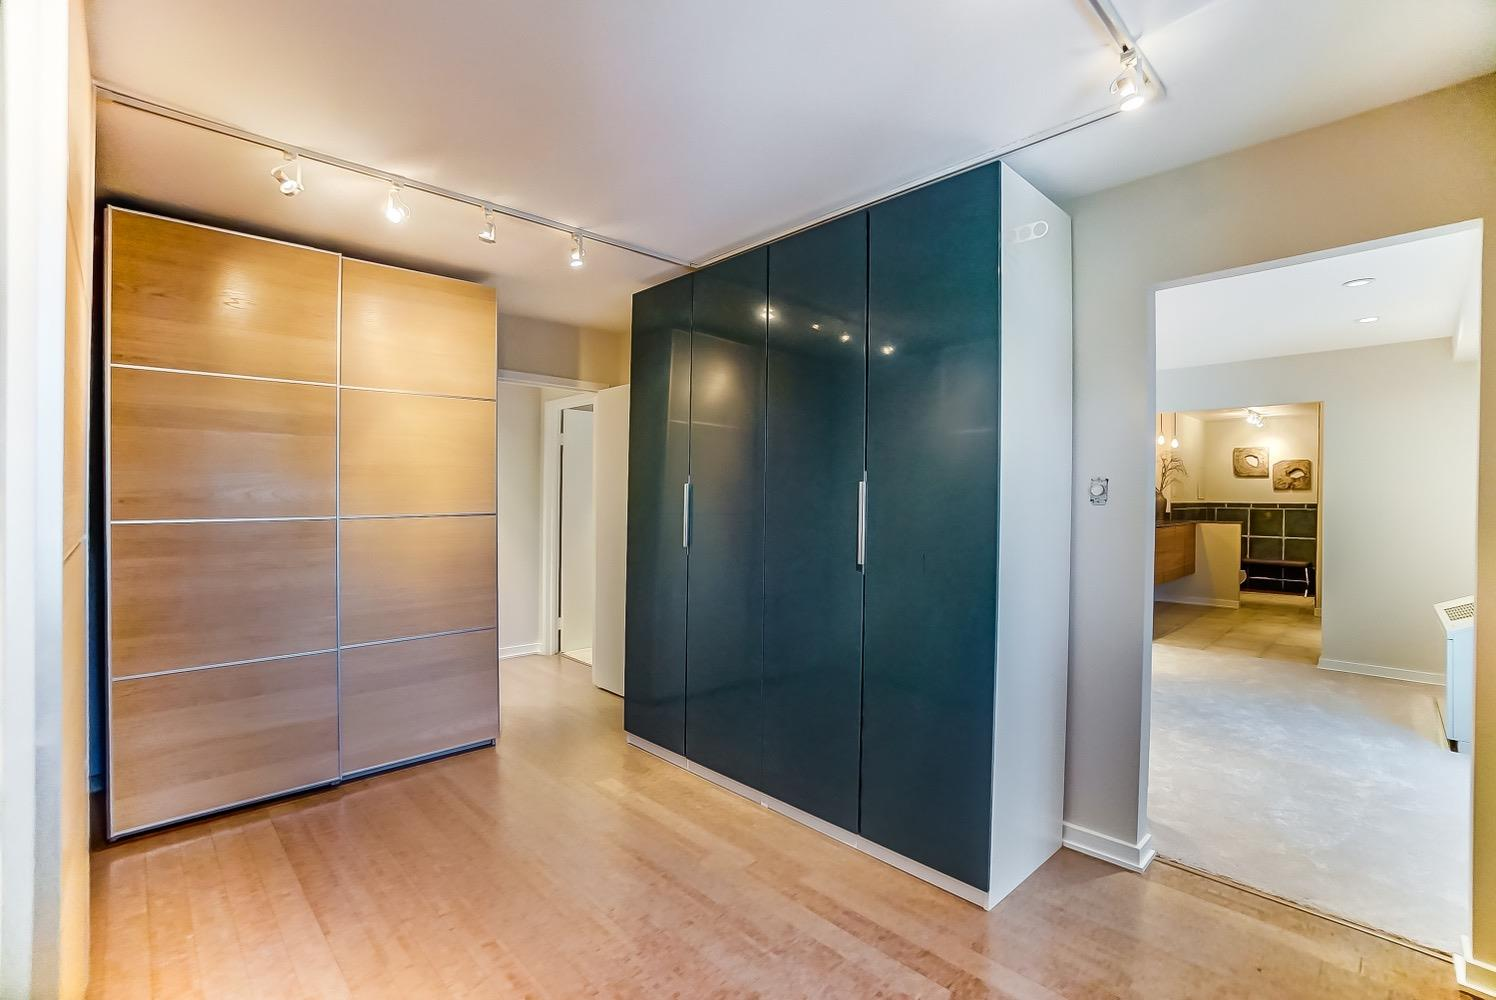 A view into the converted walk-in primary closet. The closet wardrobe units could be relocated to the primary bedroom should someone desire to return the space to a third bedroom.